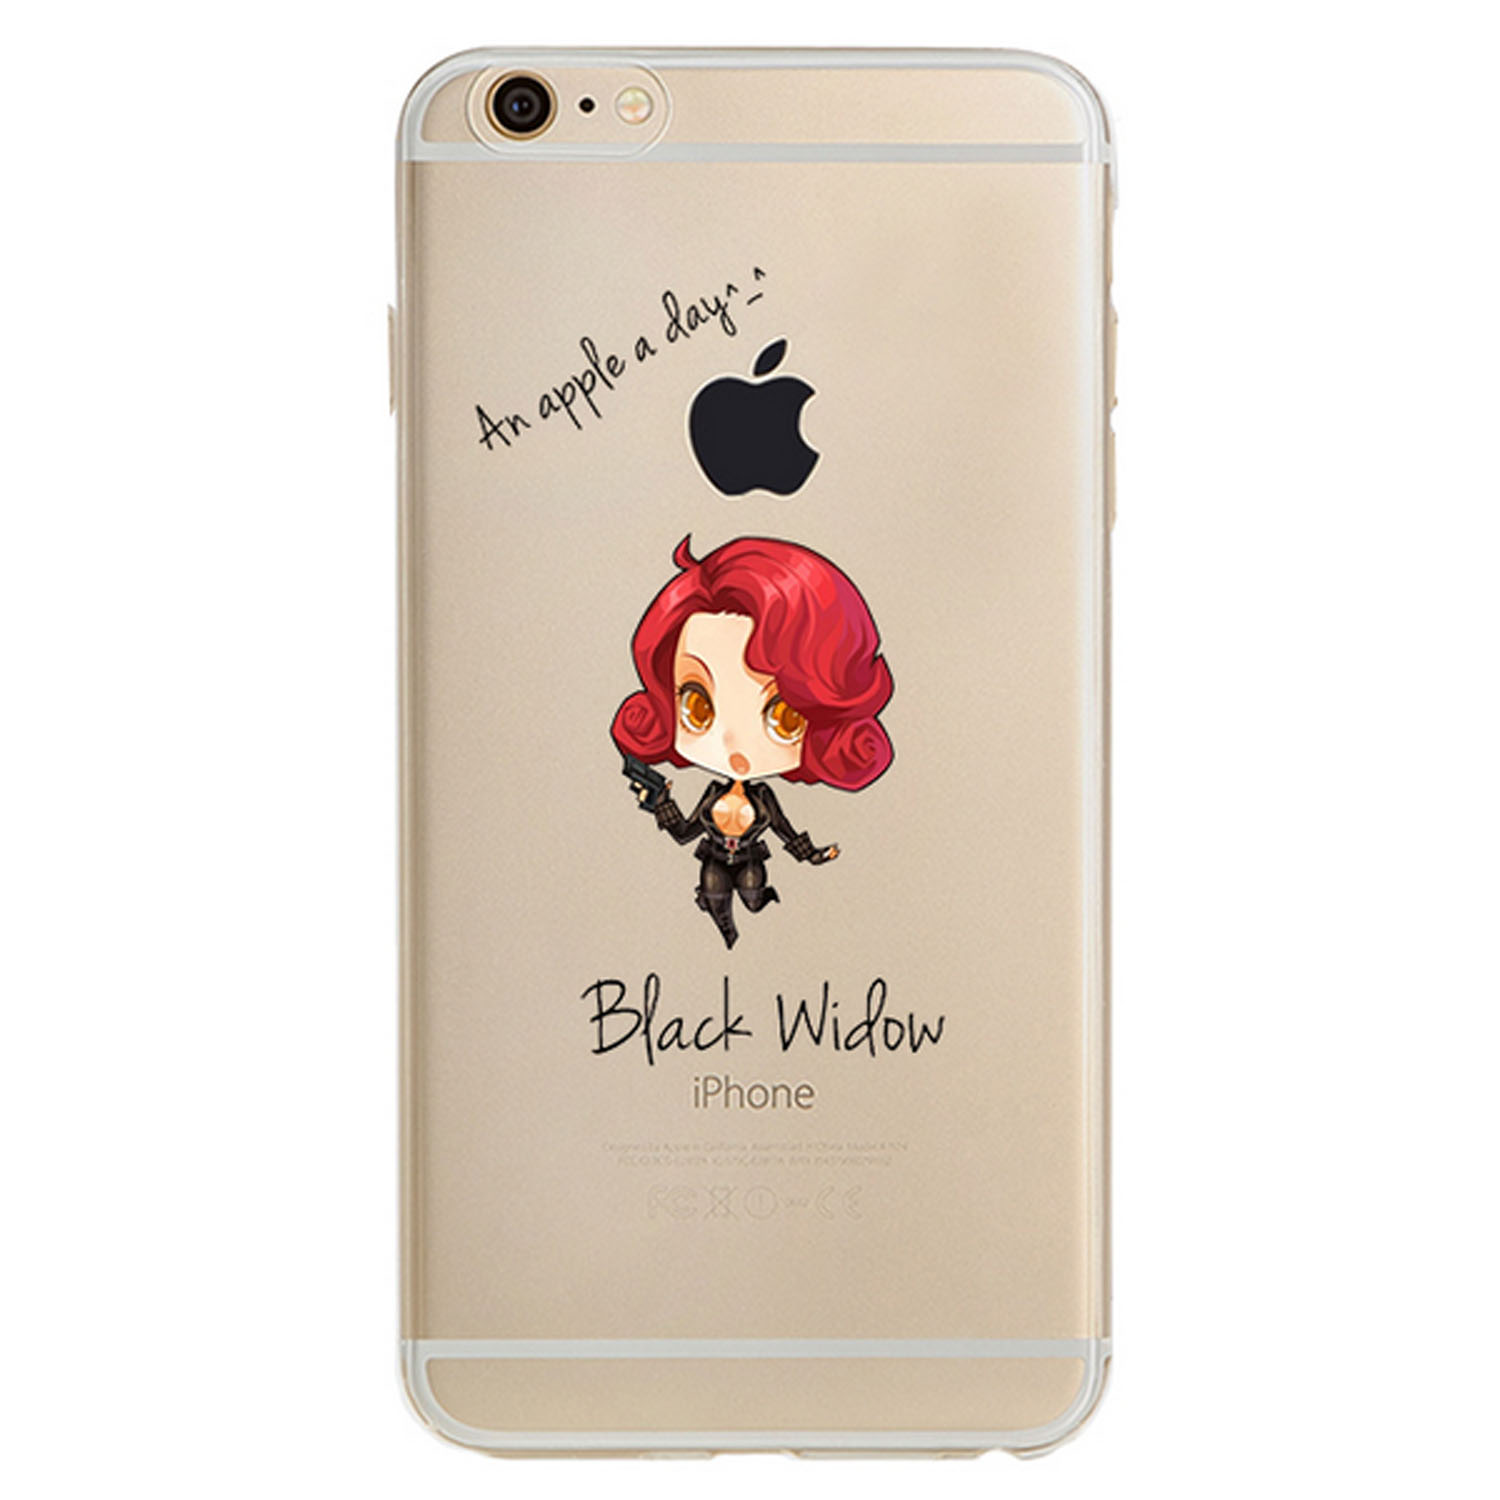 Kritzel Collection für iPhone 7 - Black Widow